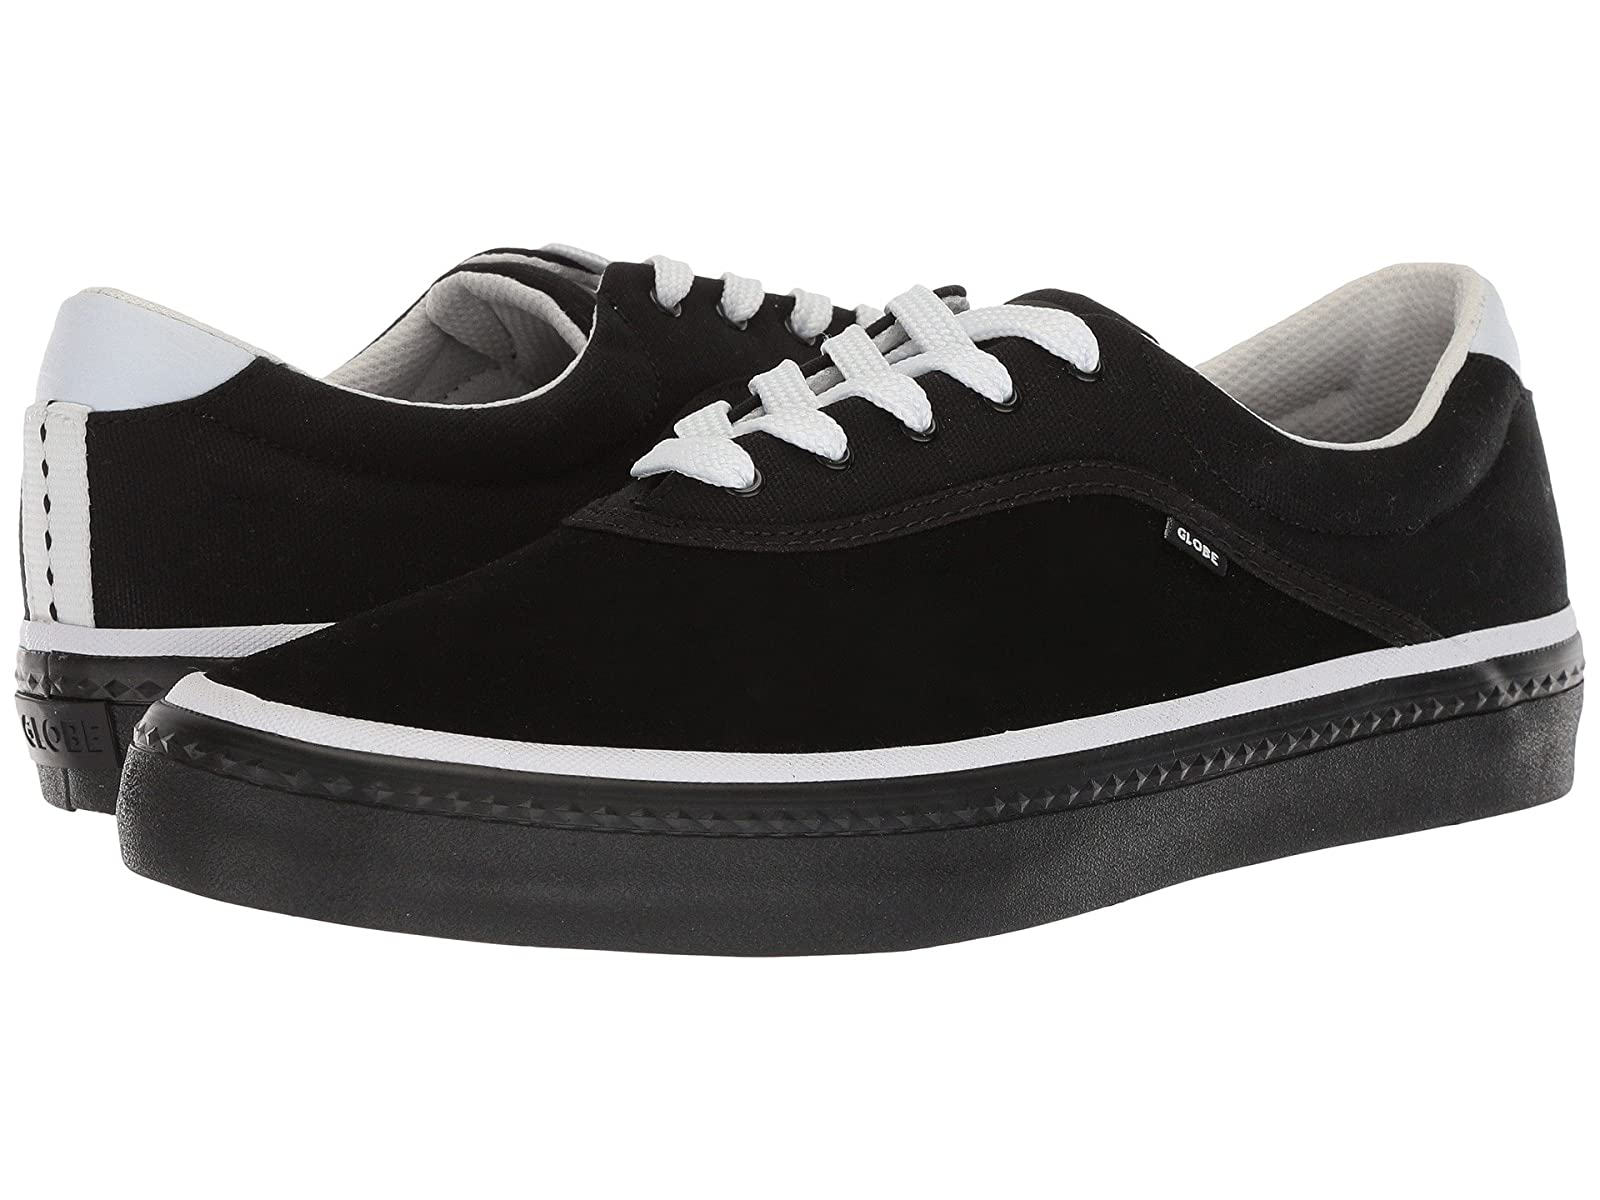 Globe SproutAtmospheric grades have affordable shoes